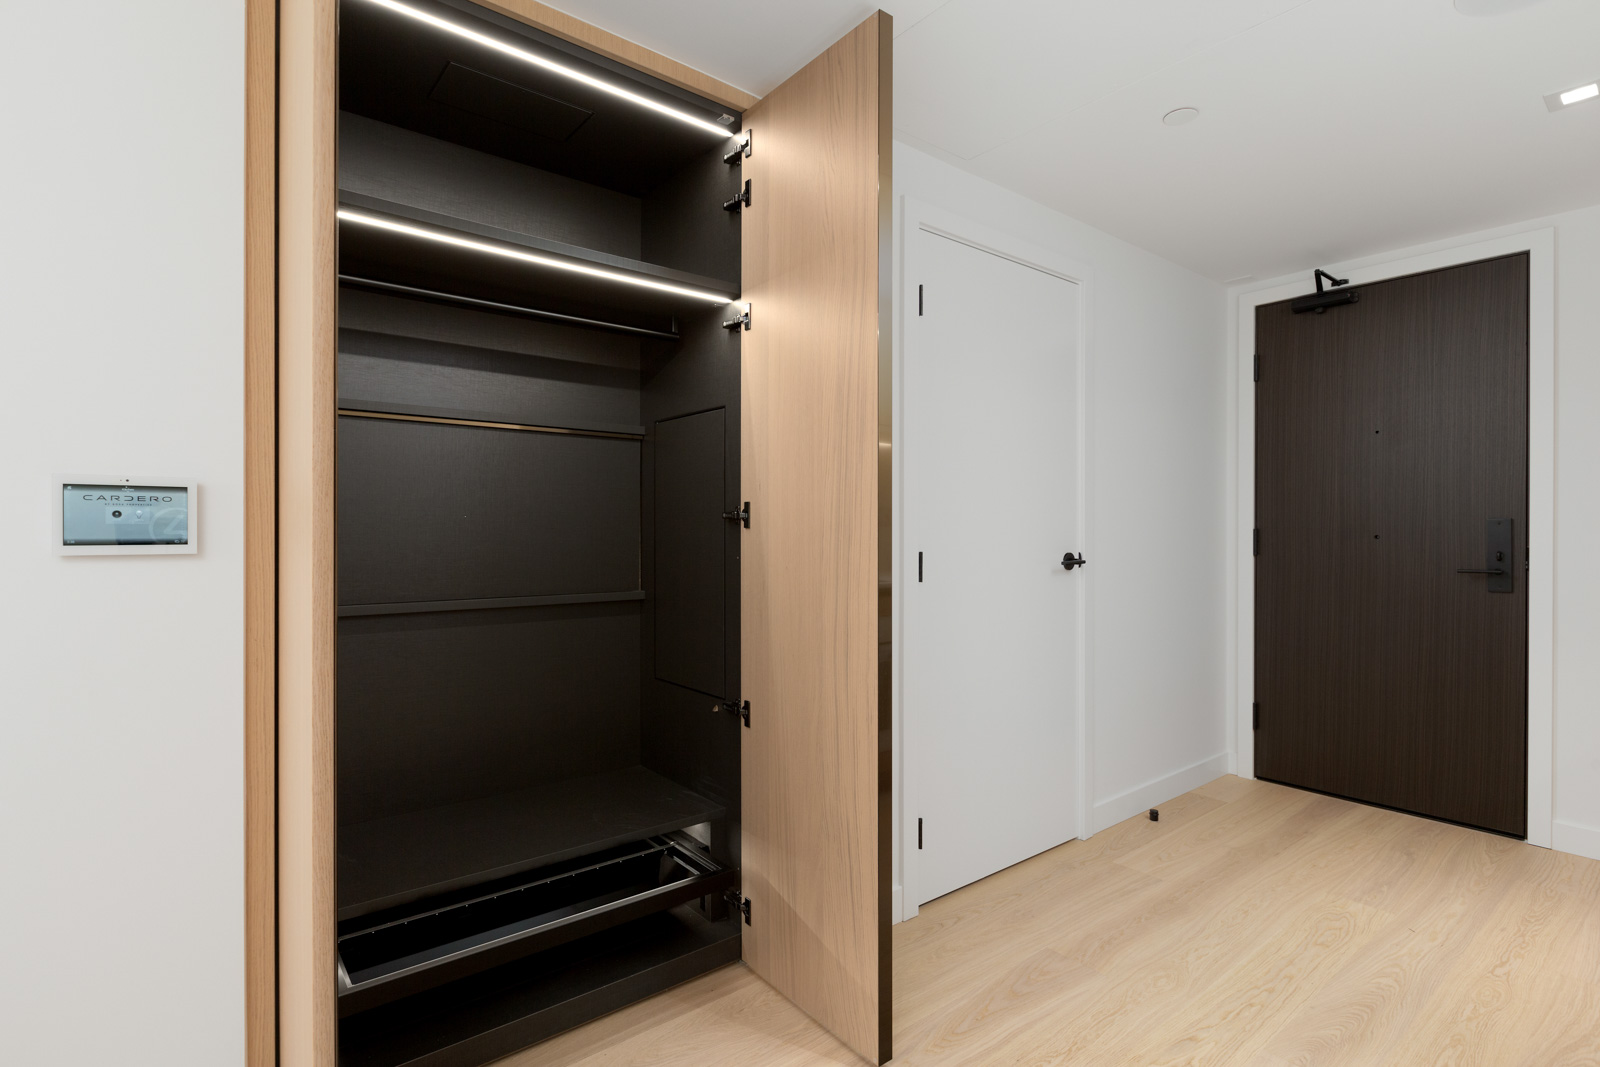 wardrobe in brand new cardero building designed by henriquez partners architects in coal harbour in downtown vancouver